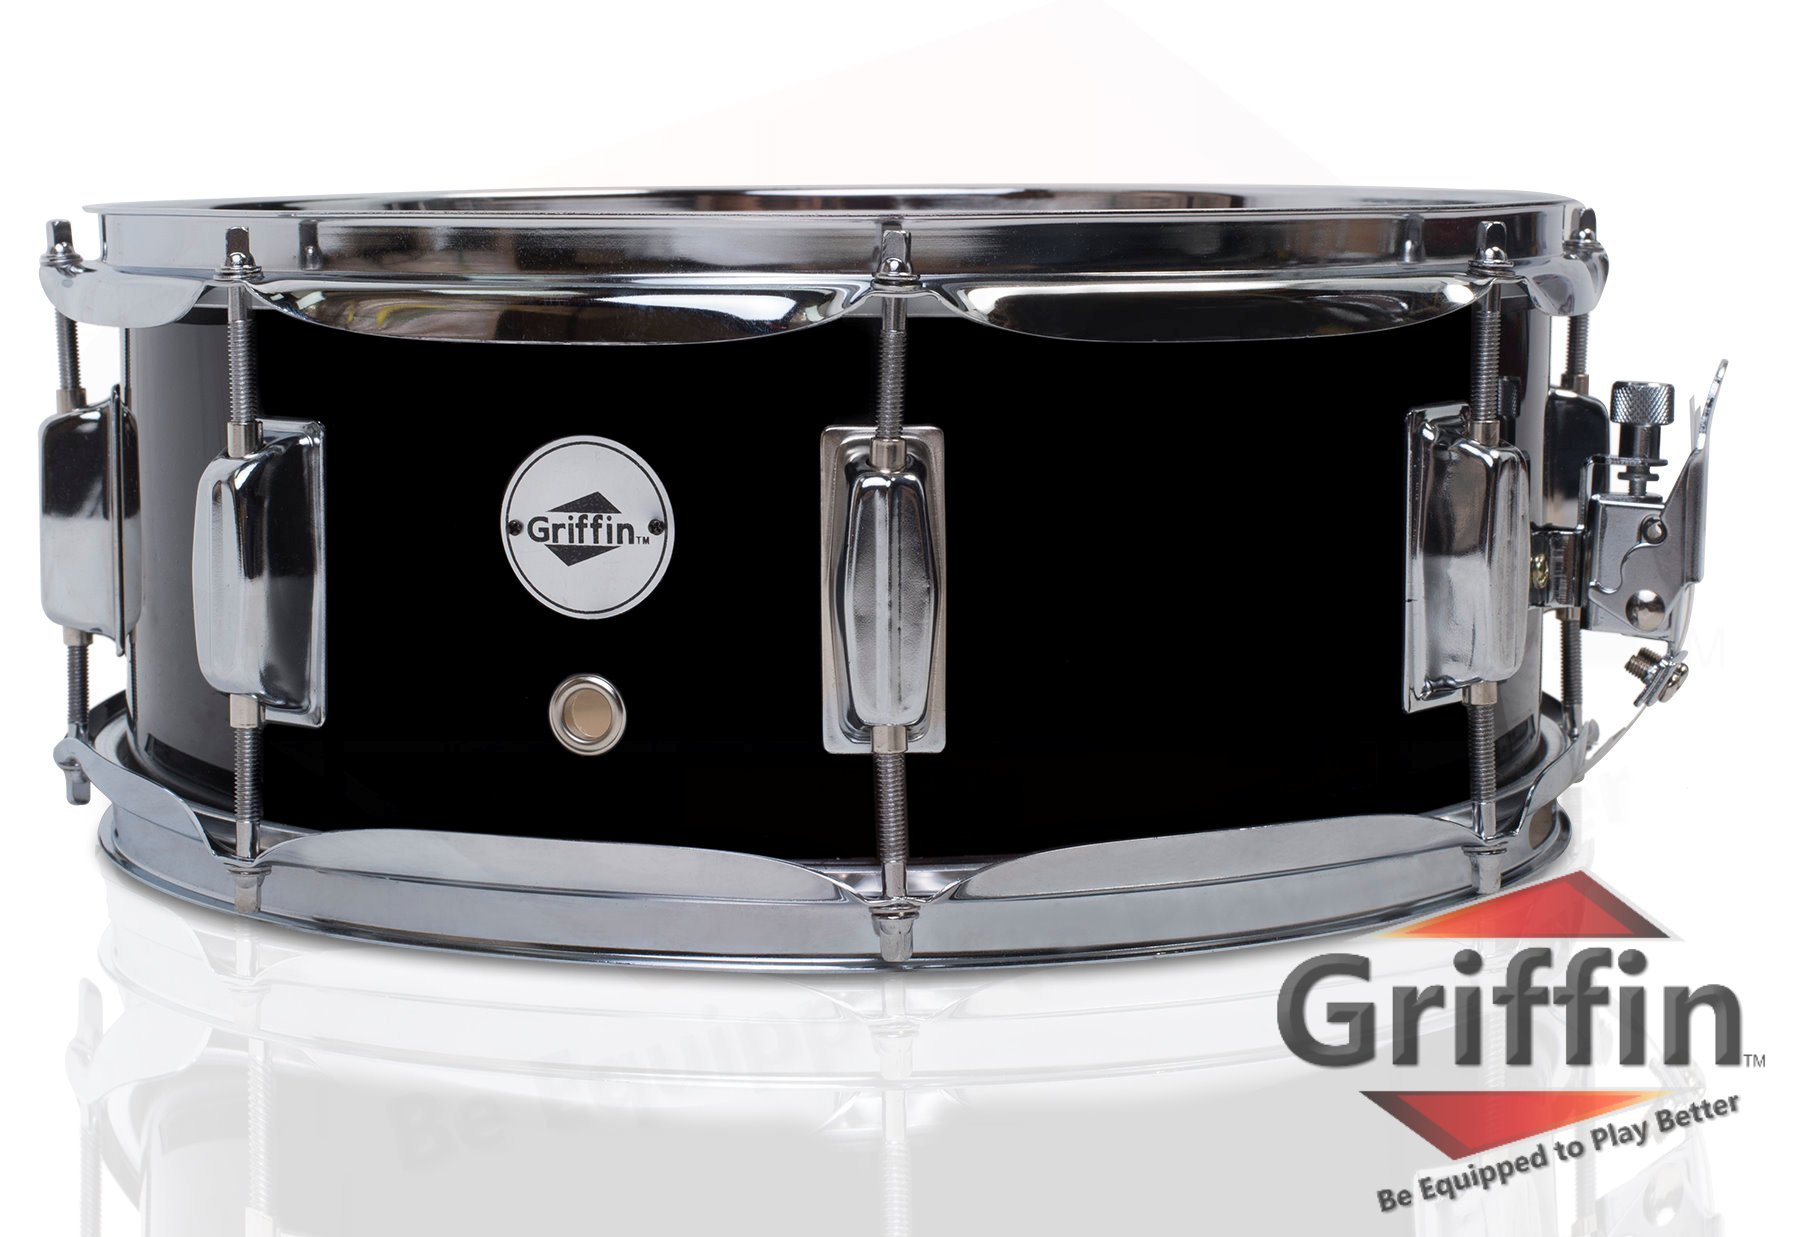 Griffin Snare Drum | Poplar Wood Shell 14'' x 5.5'' with Black PVC Glossy Finish|Percussion Musical Instrument with Drummers Key for Students & Professionals|8 Tuning Lugs & Snare Strainer